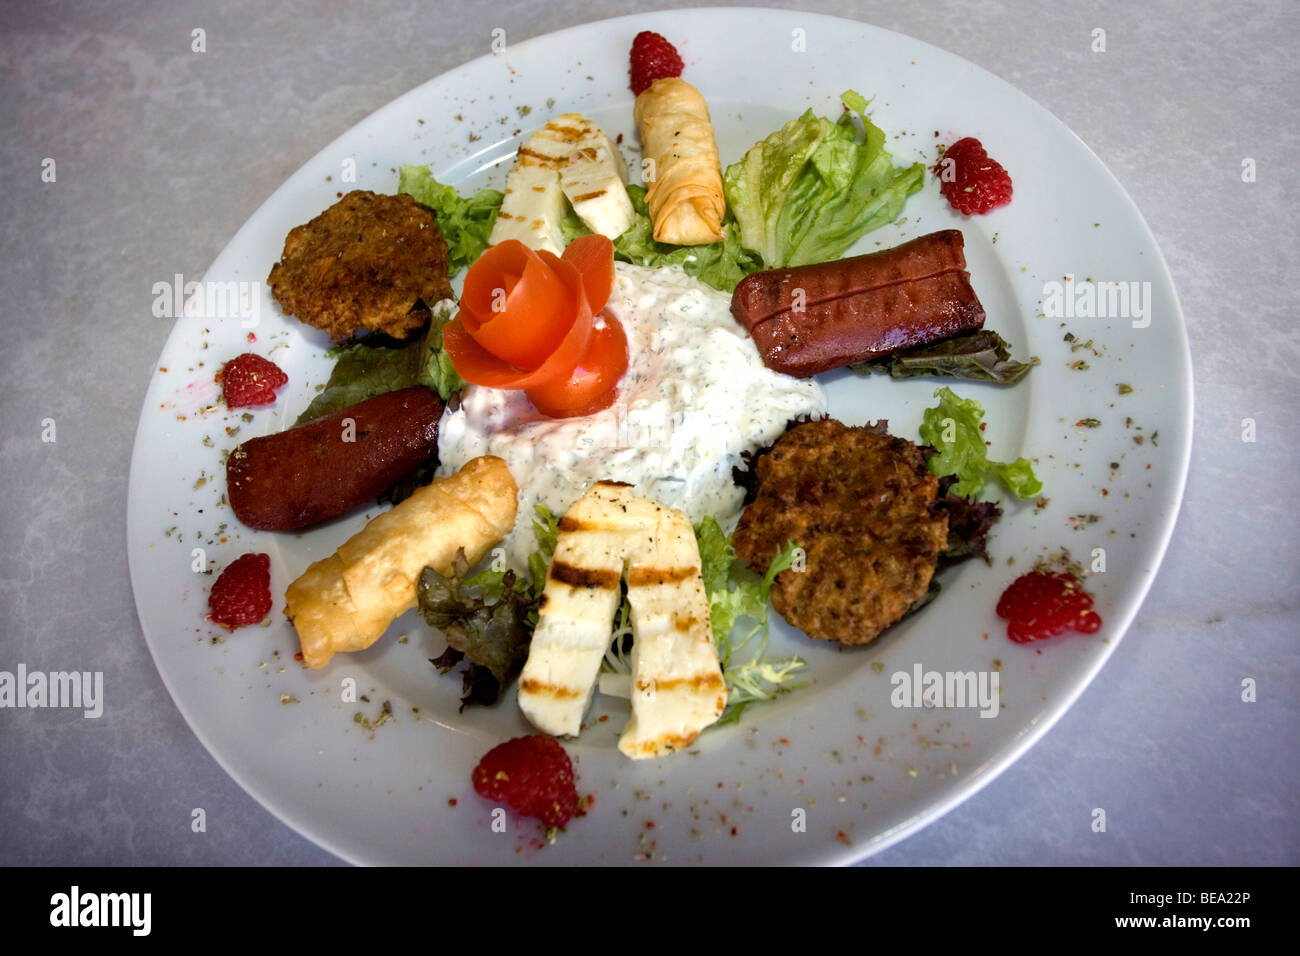 Close-up of a plate of Hot Greek mezze platter in a modern Greek restaurant in Hove, East Sussex, UK. - Stock Image